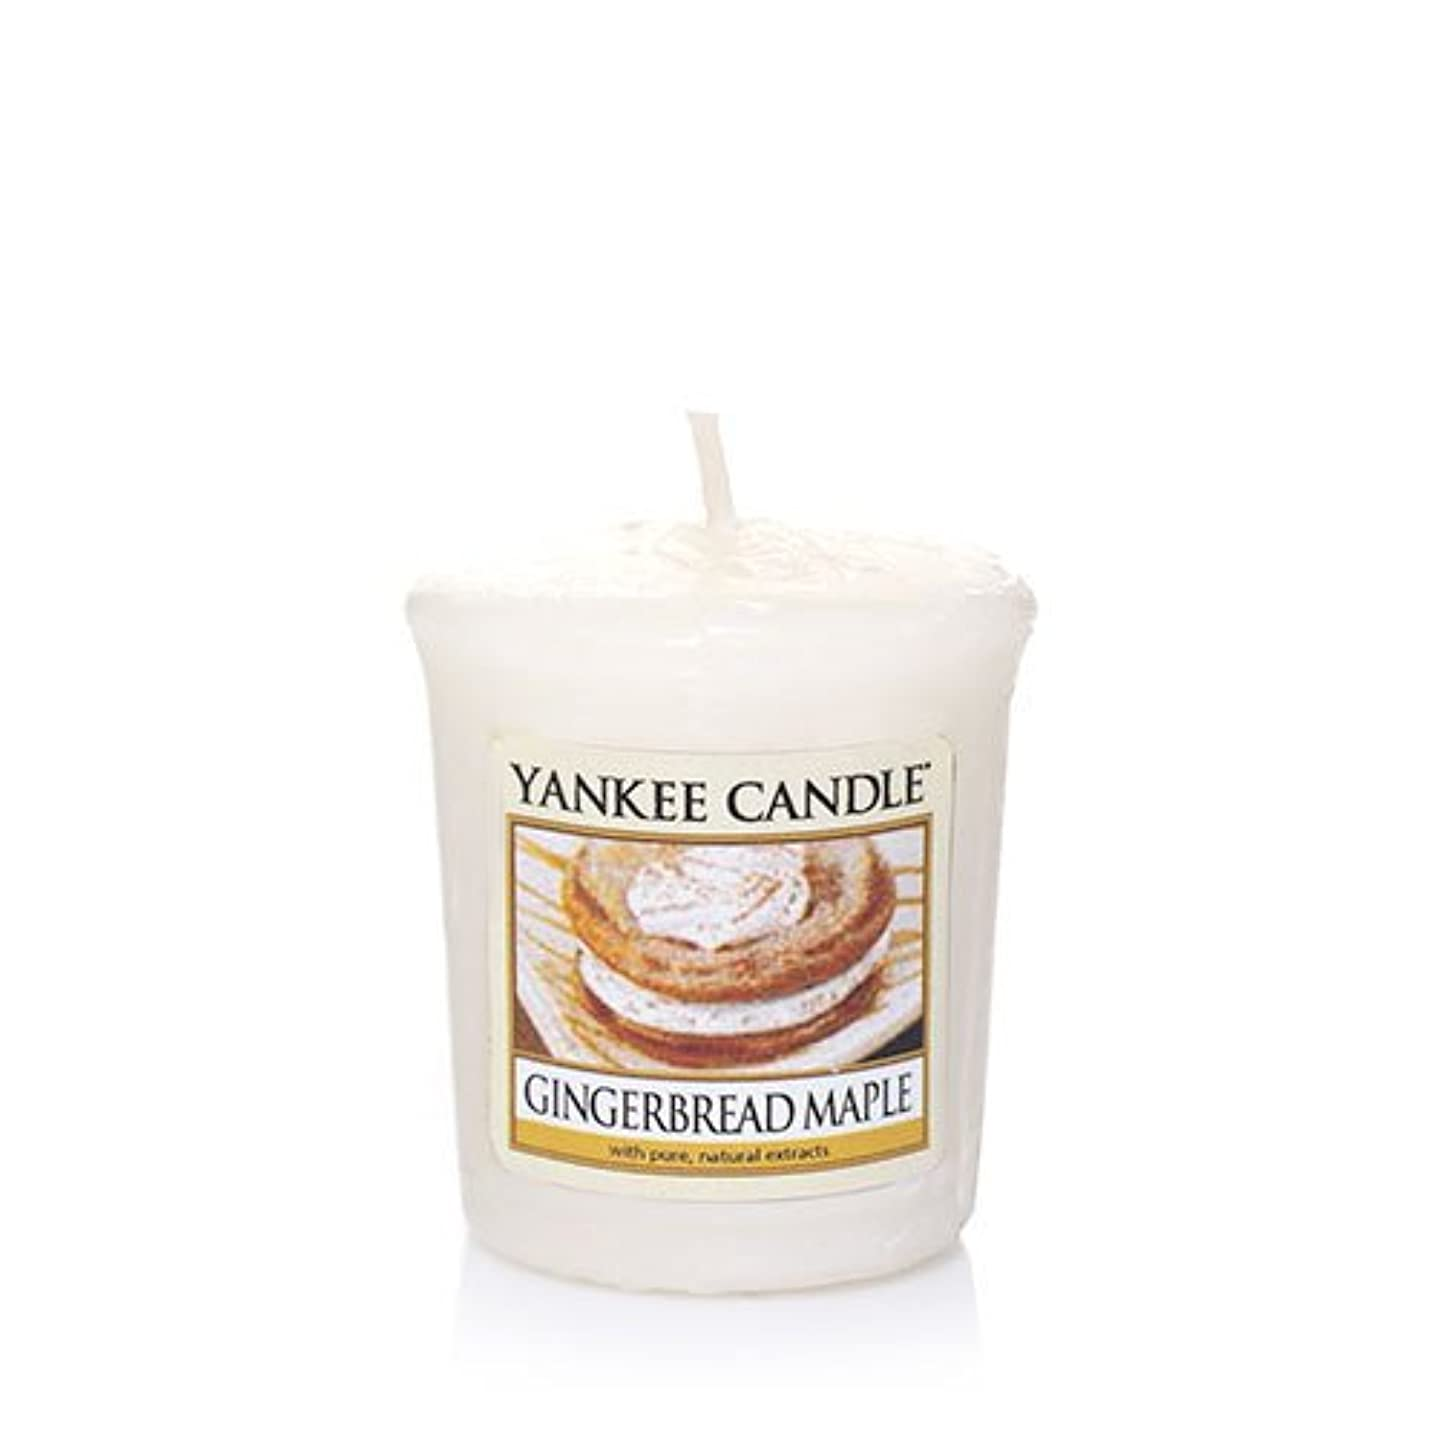 呪い取り出す依存Yankee Candle Gingerbread Maple Samplers Votive Candle、Festive香り